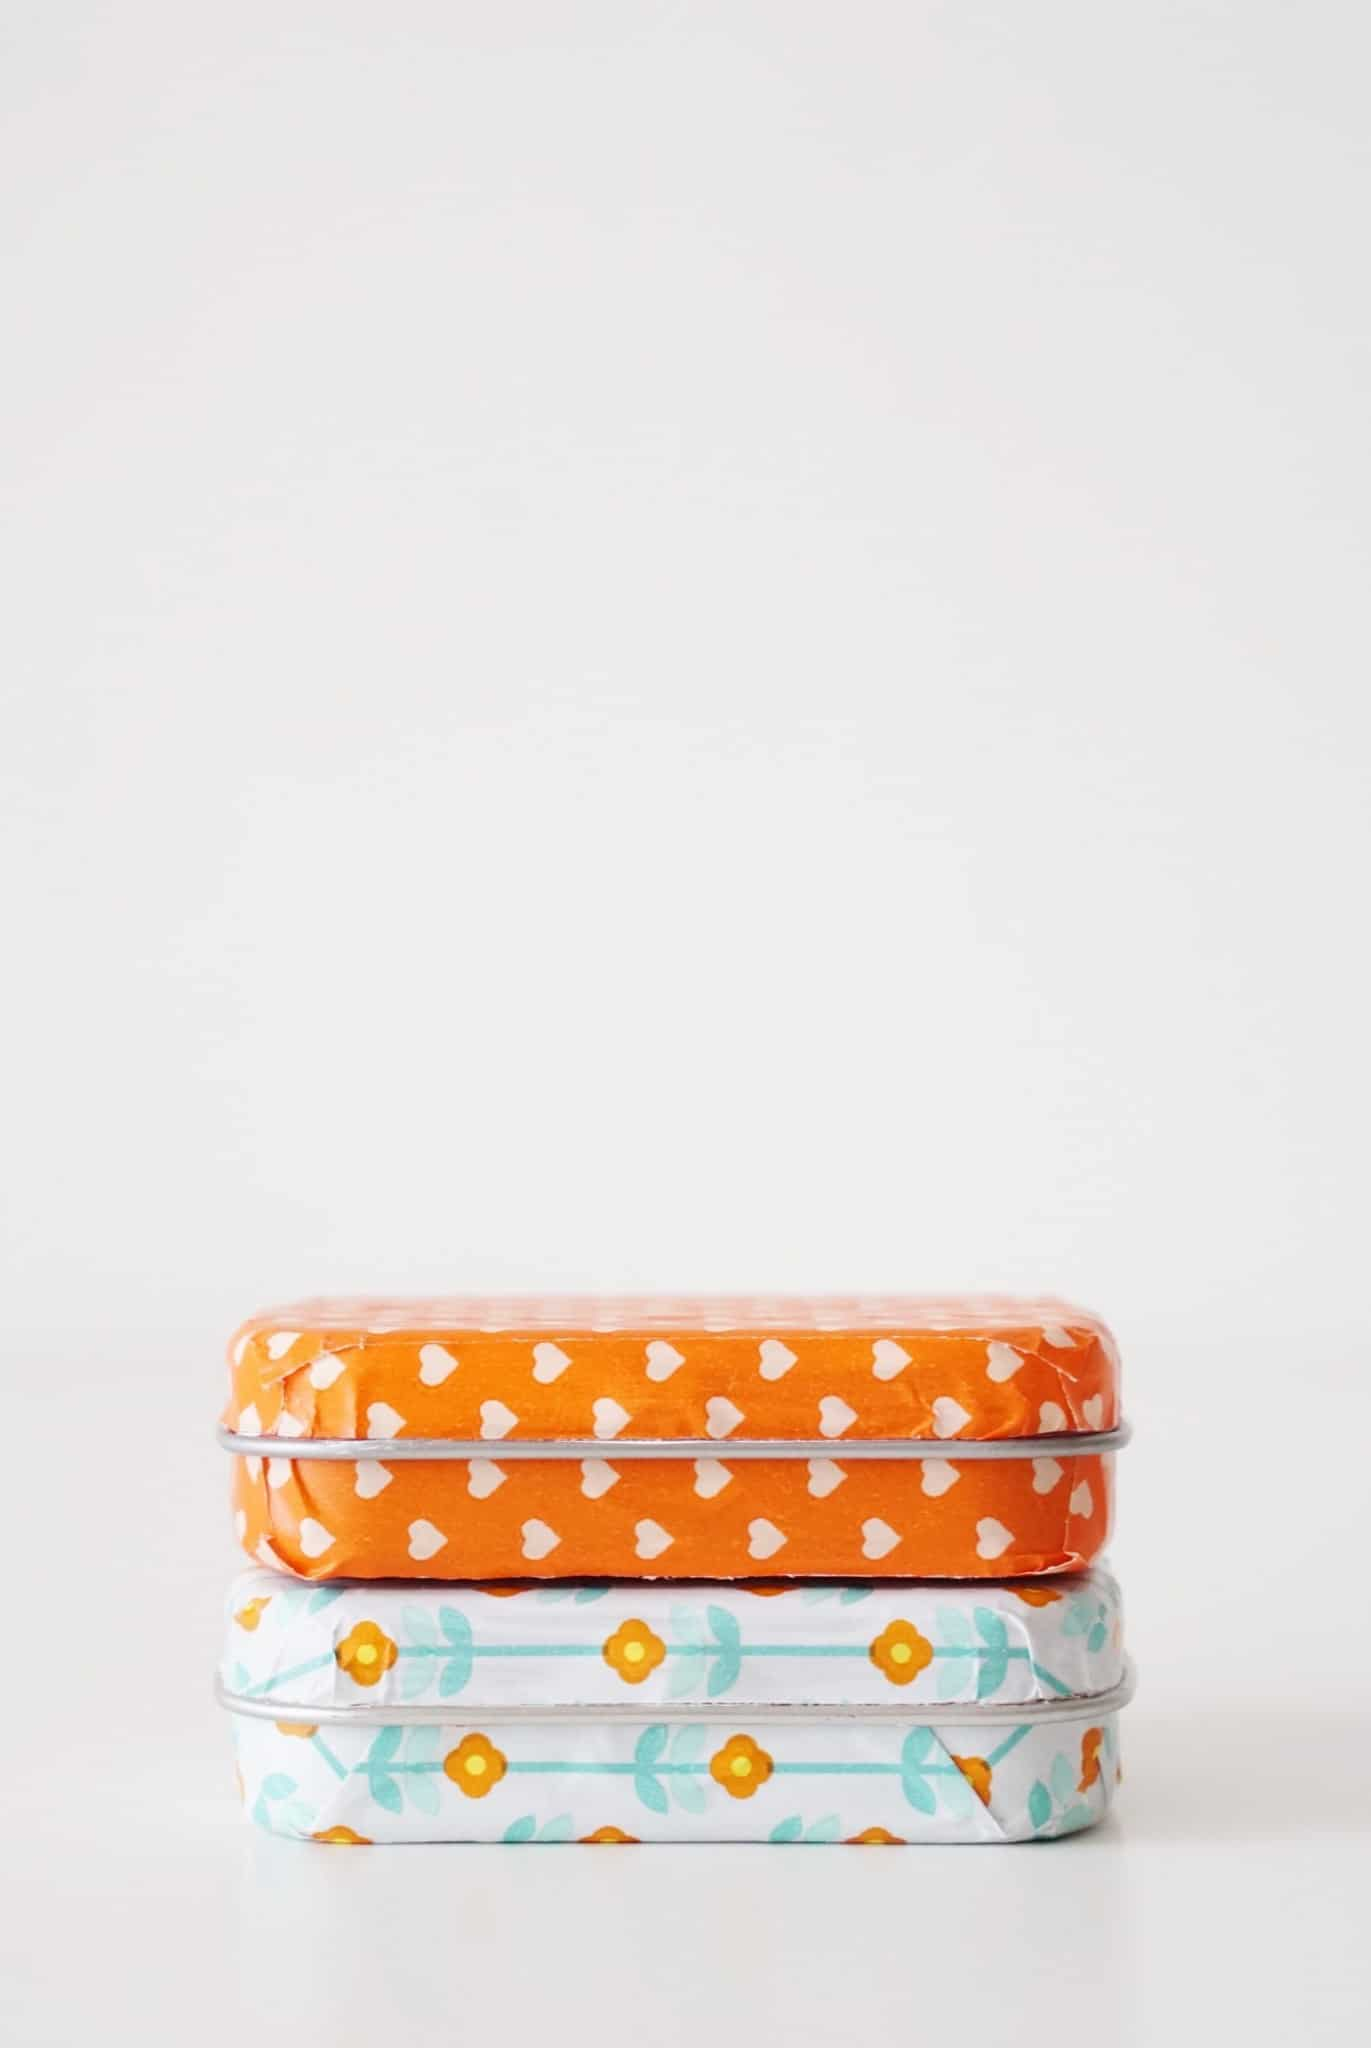 Altoids tin crafts - decorating with washi tape